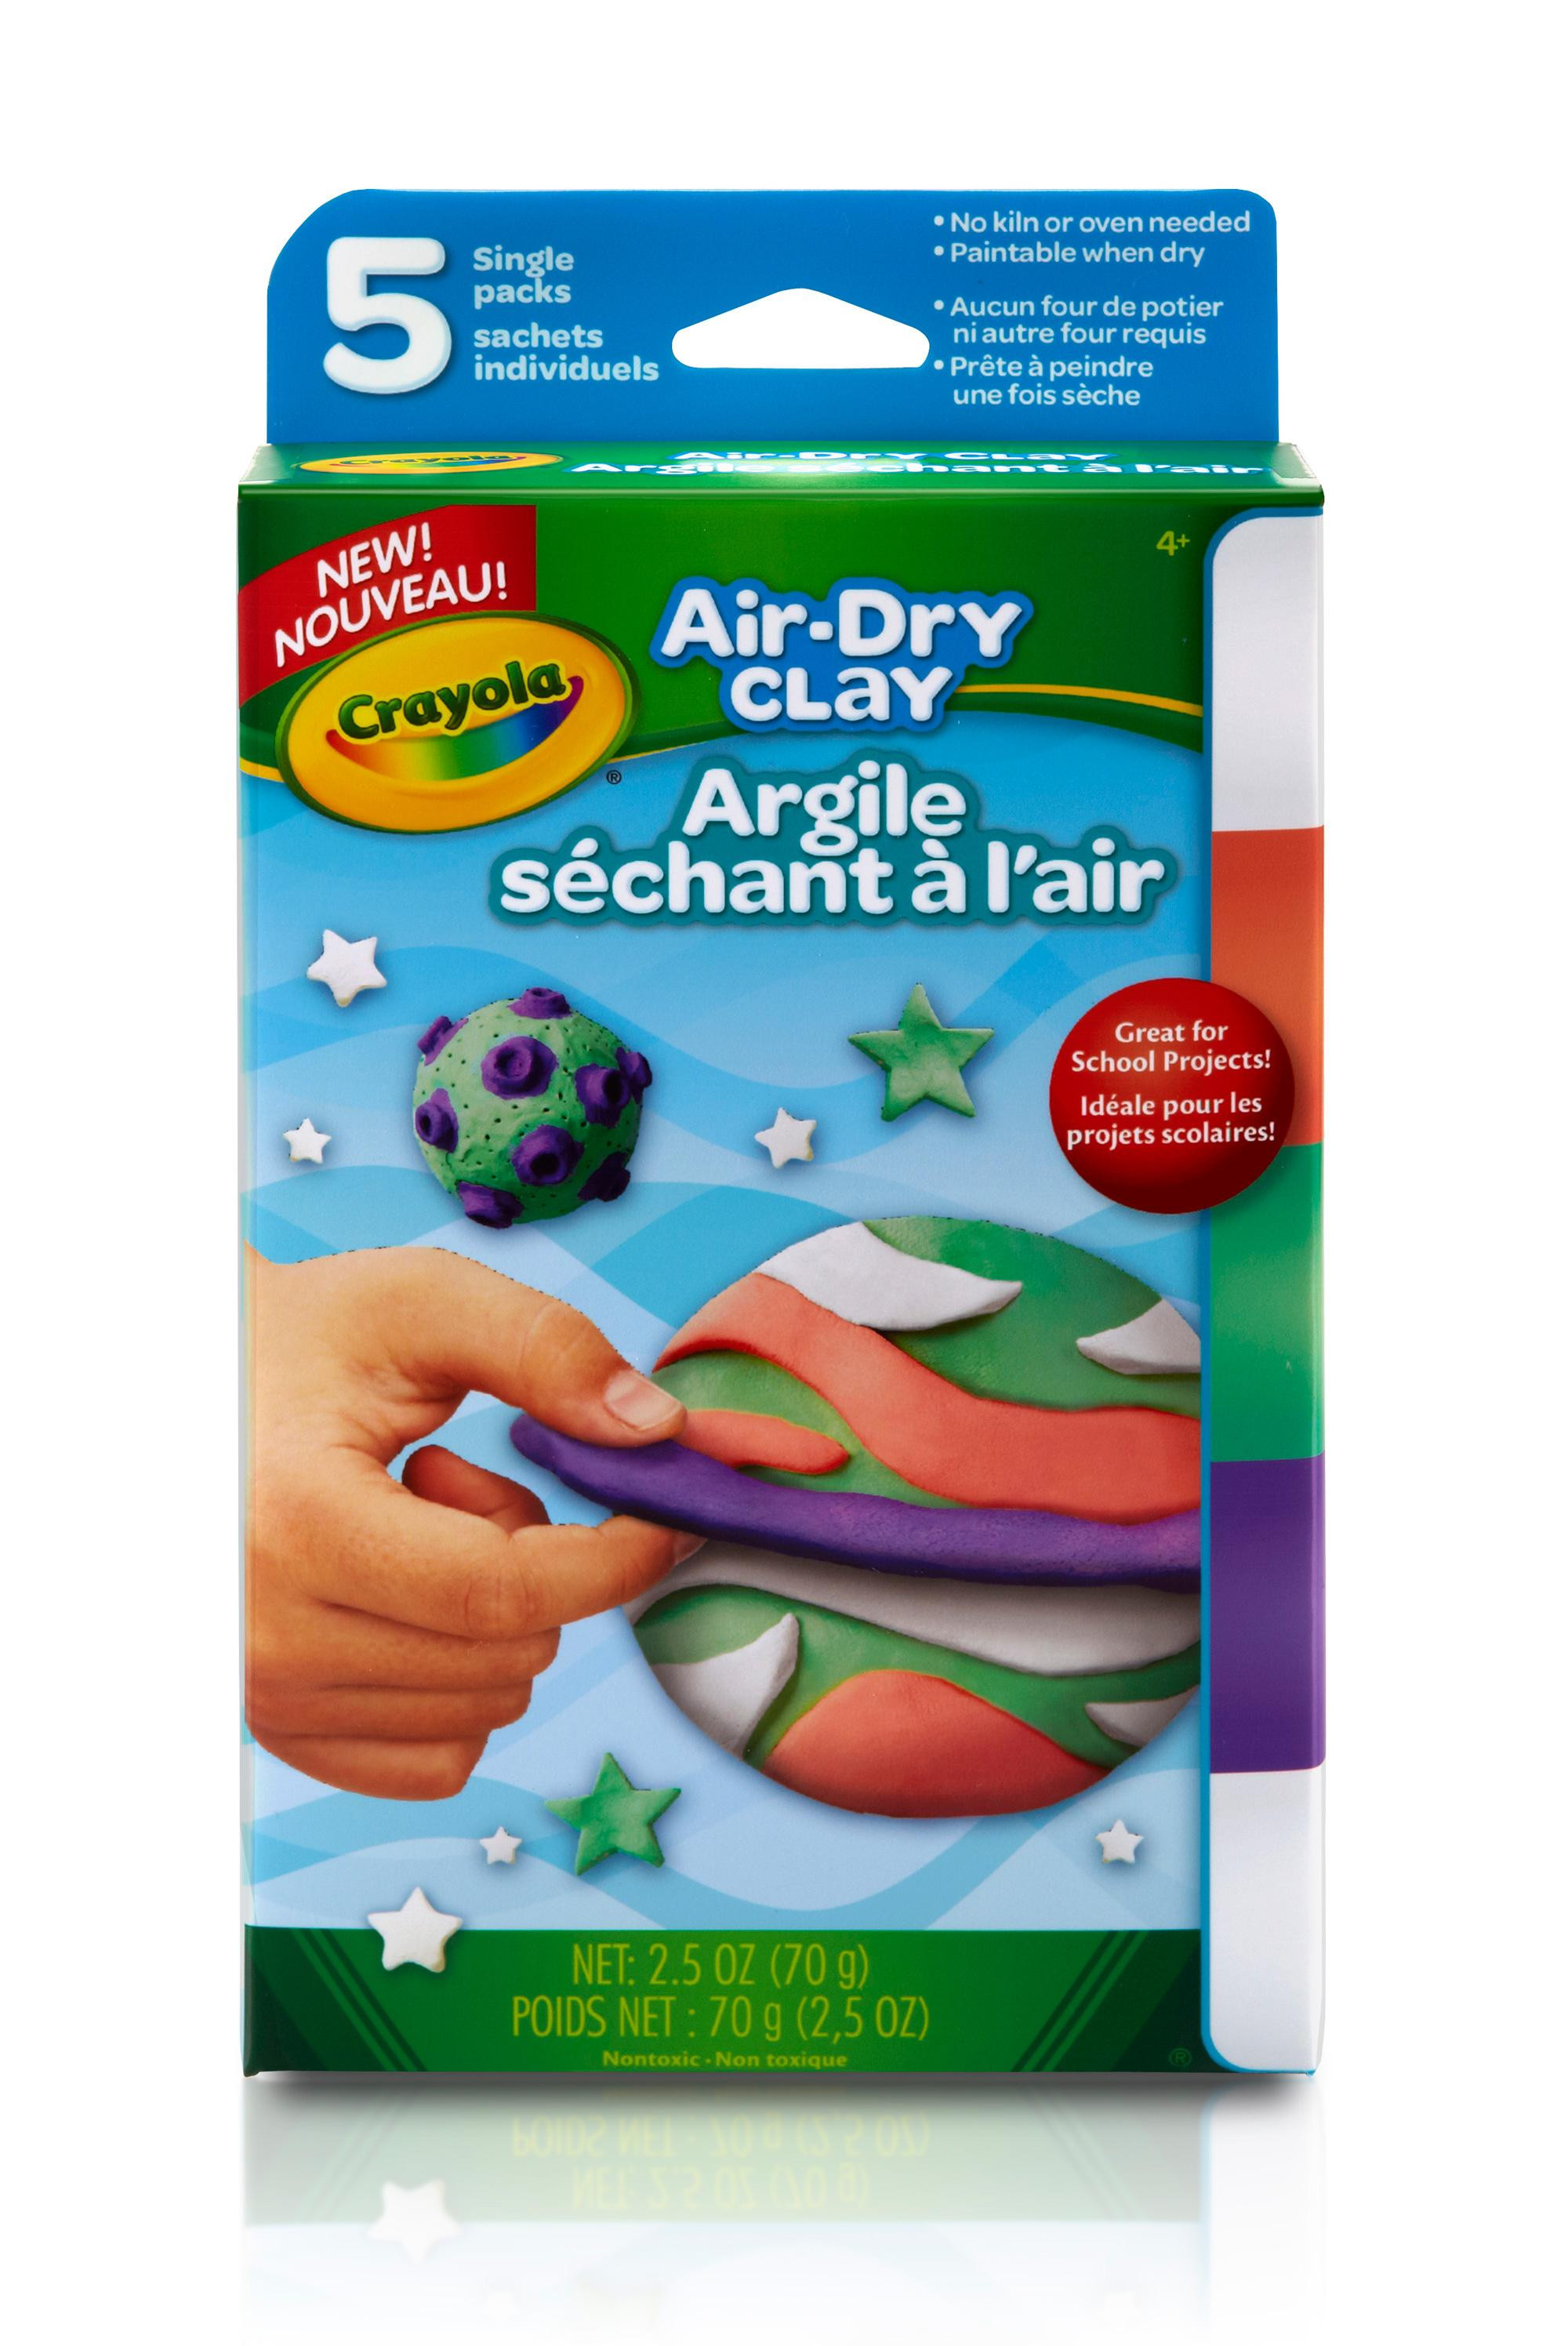 Luxury Amazon Crayola Air Dry Clay Variety Pack Bright Colored Air Dry Clay Of Amazing 47 Pictures Colored Air Dry Clay